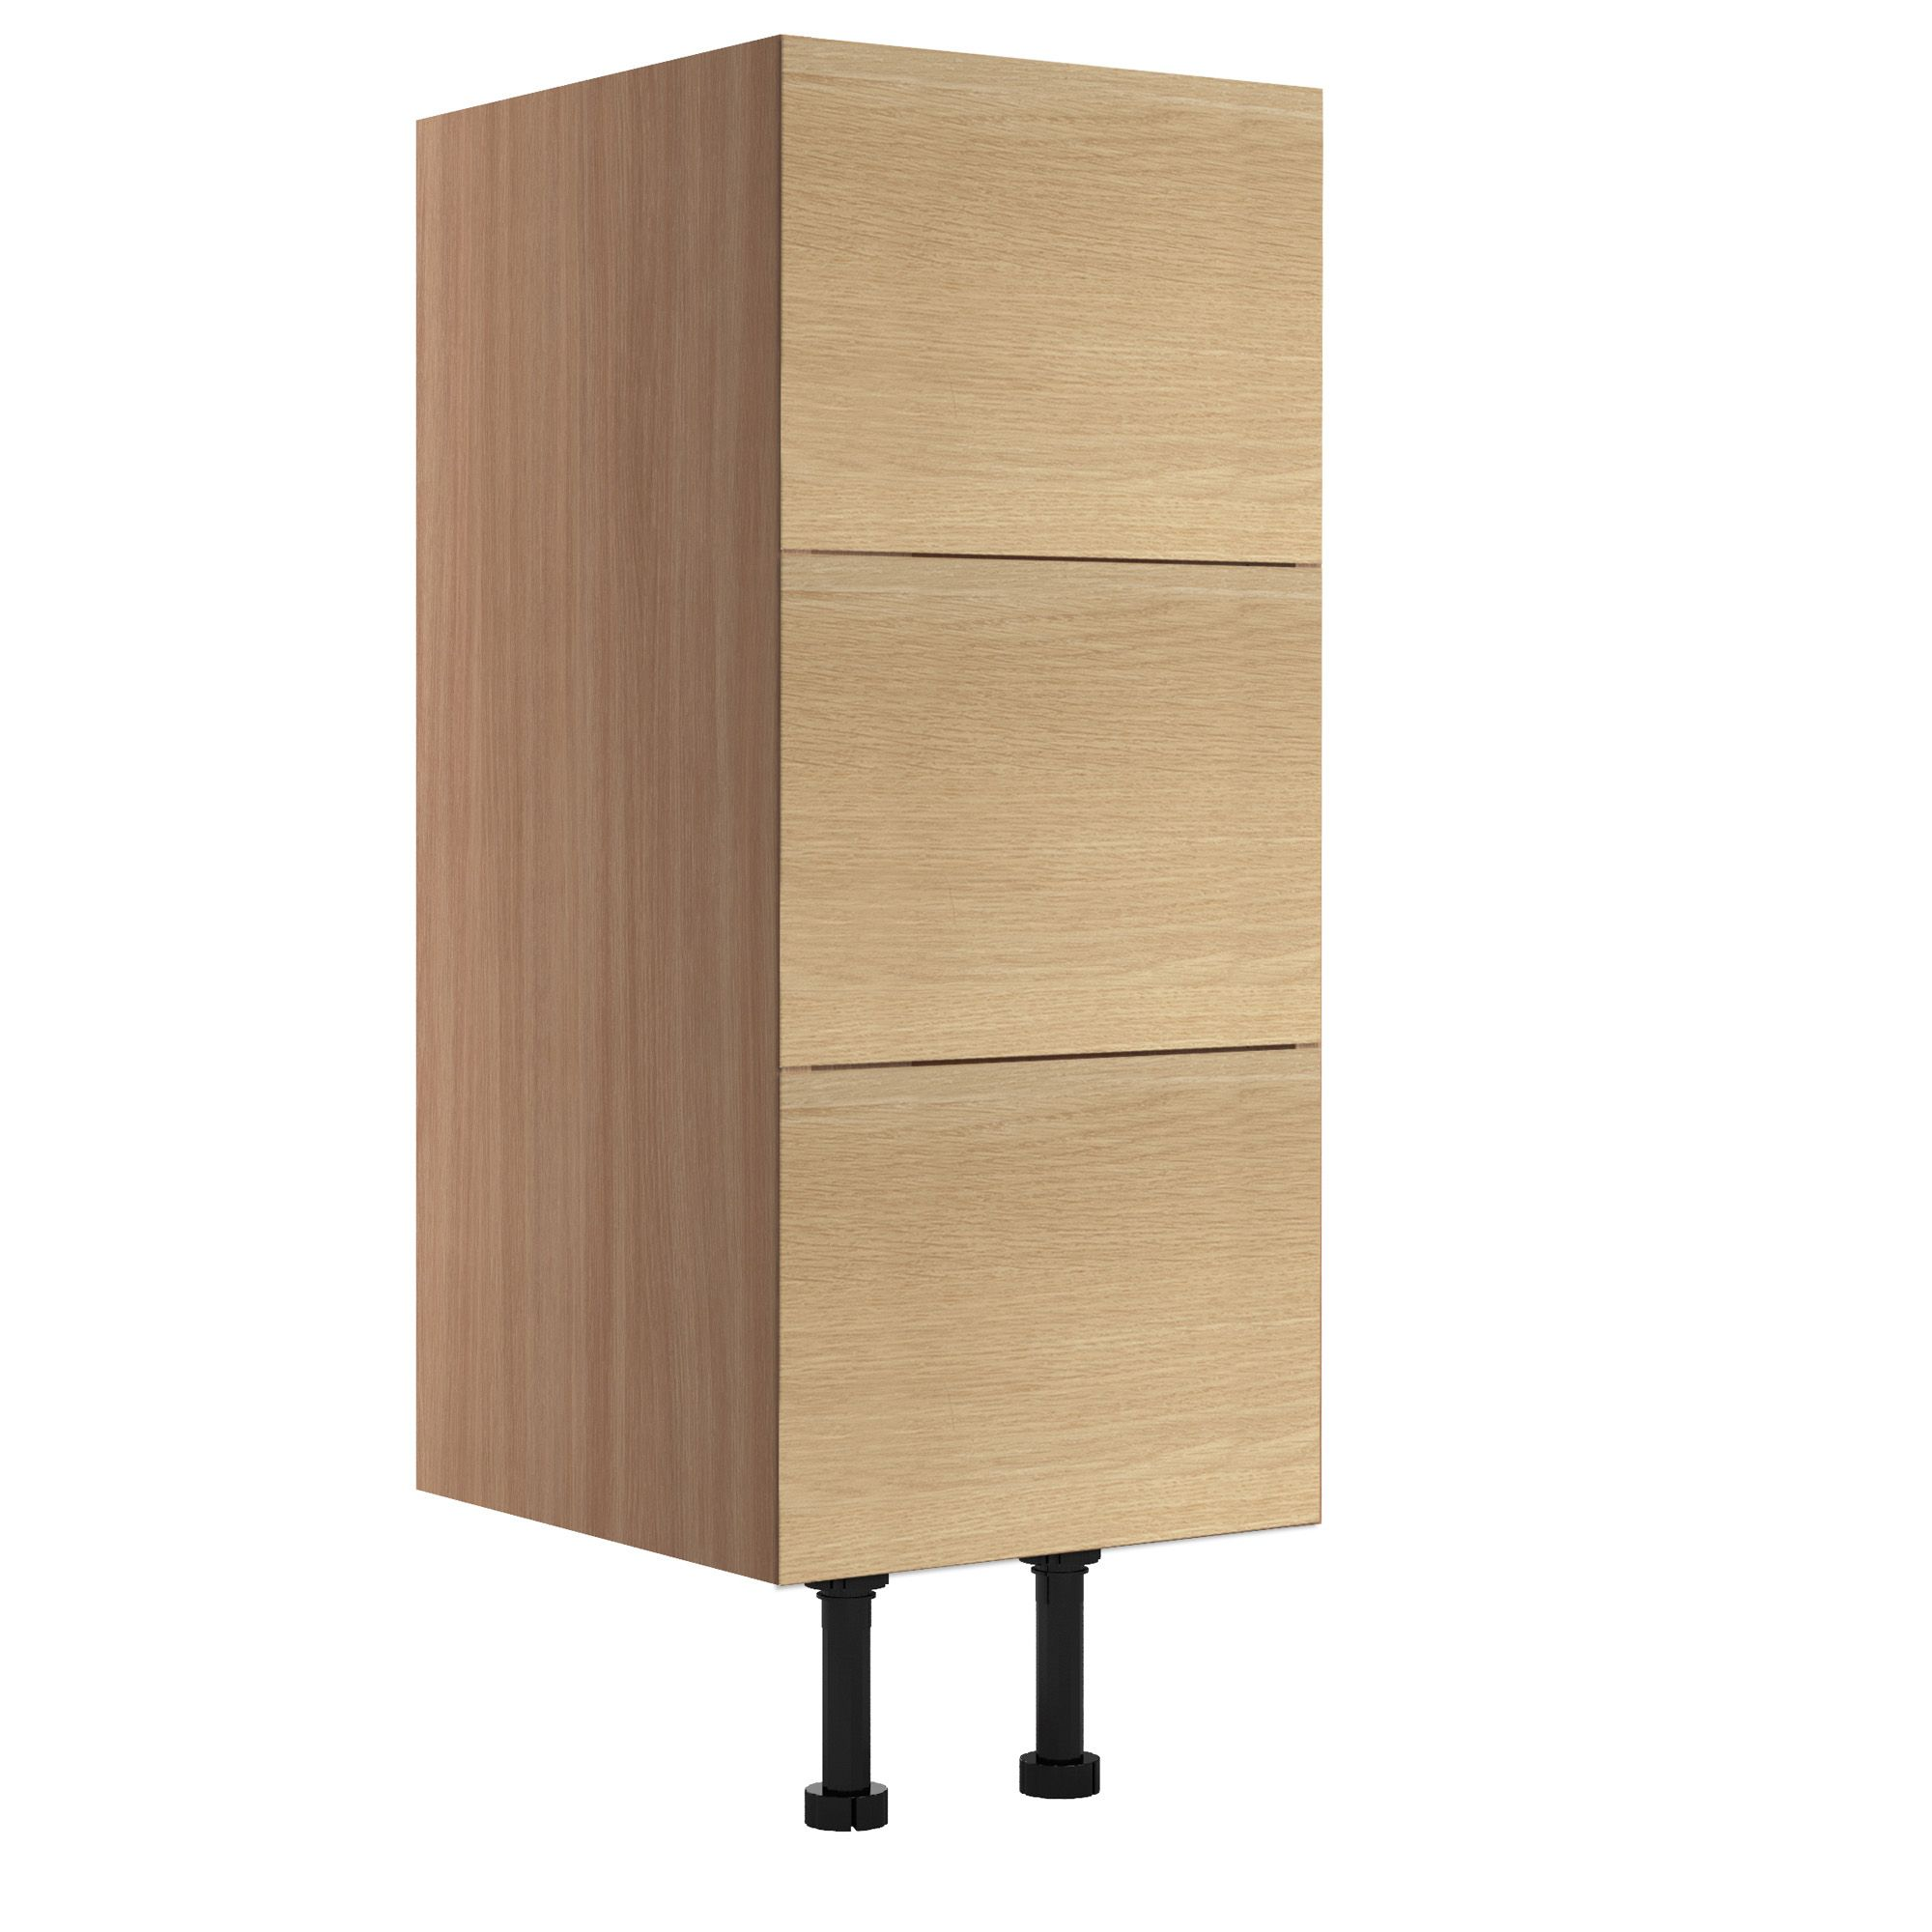 Cooke & Lewis Antero Oak Effect Narrow Base Cabinet, (w)300mm